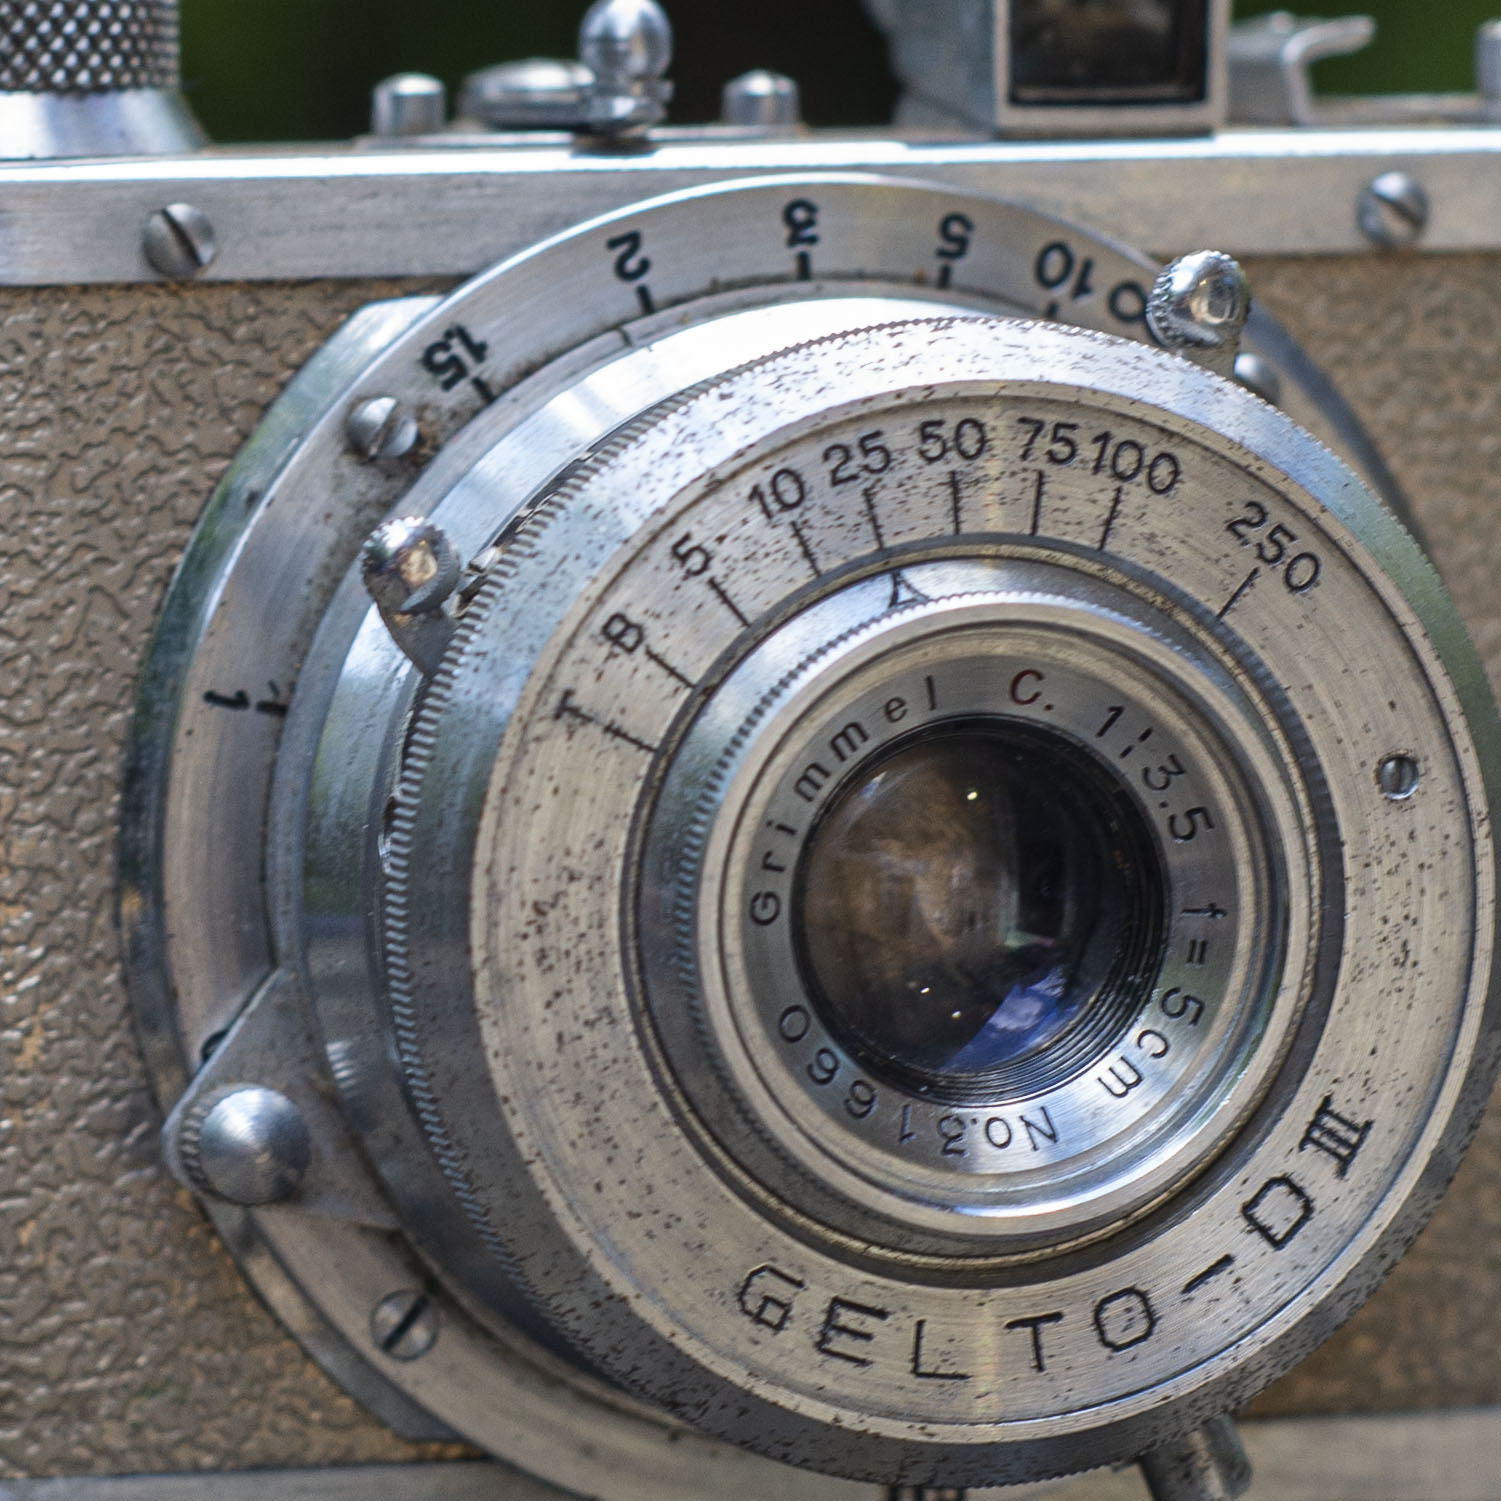 Gelto DIII camera lens detail